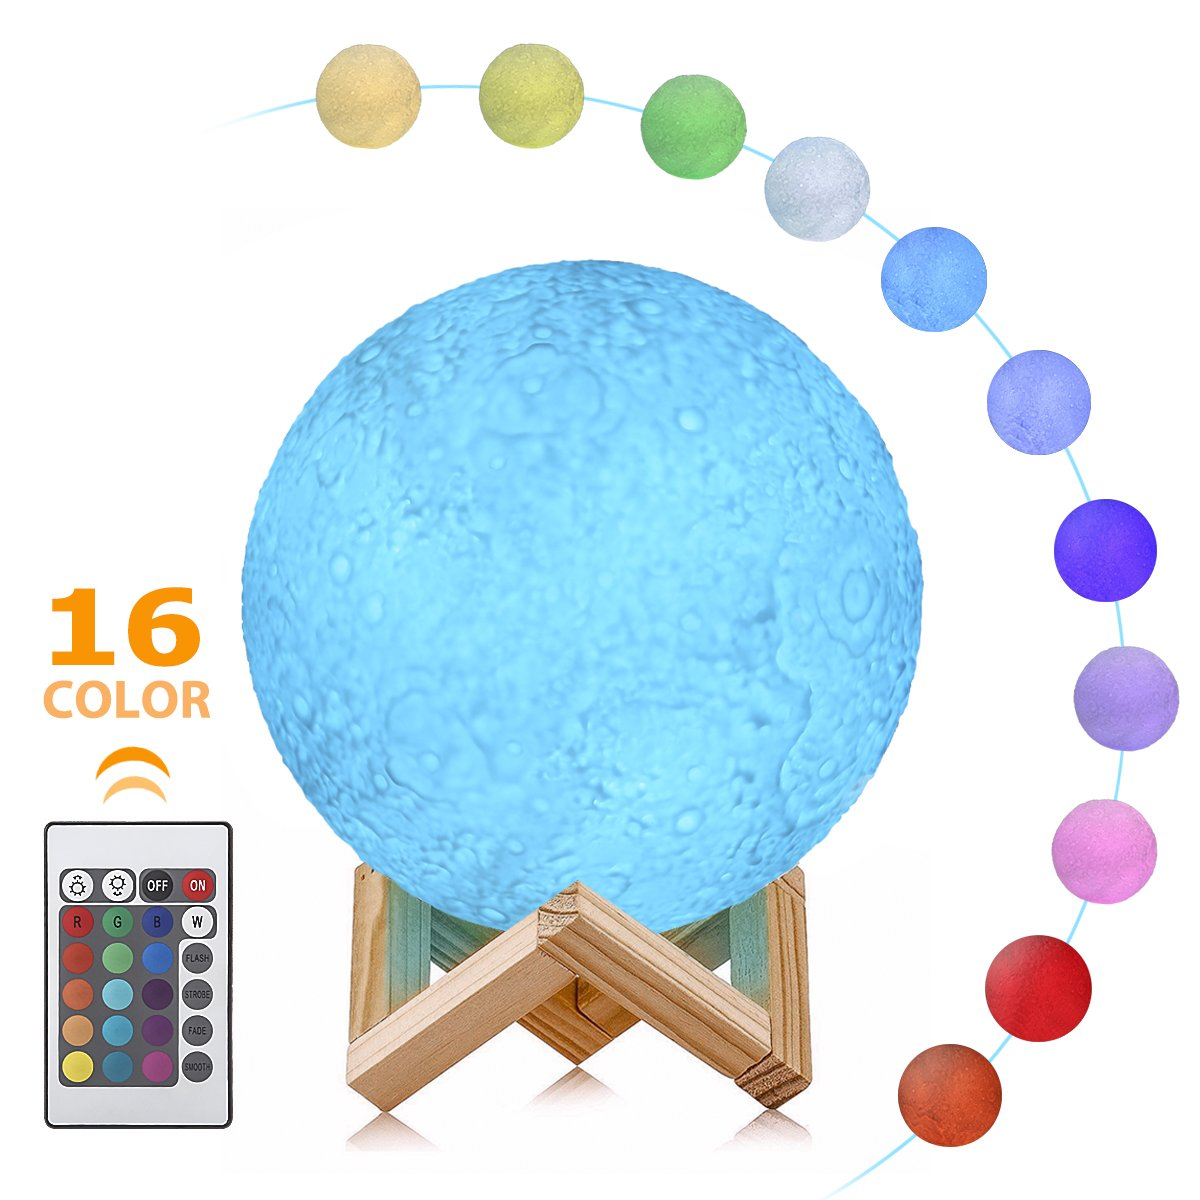 Moon Lamp - 3D LED Moon Light, 16 Colors Hangable Moon Night Light with Stand, USB Rechargeable Decorative Night Light with Remote Control for Kids, Lovers Gift by Smart&green Lighting